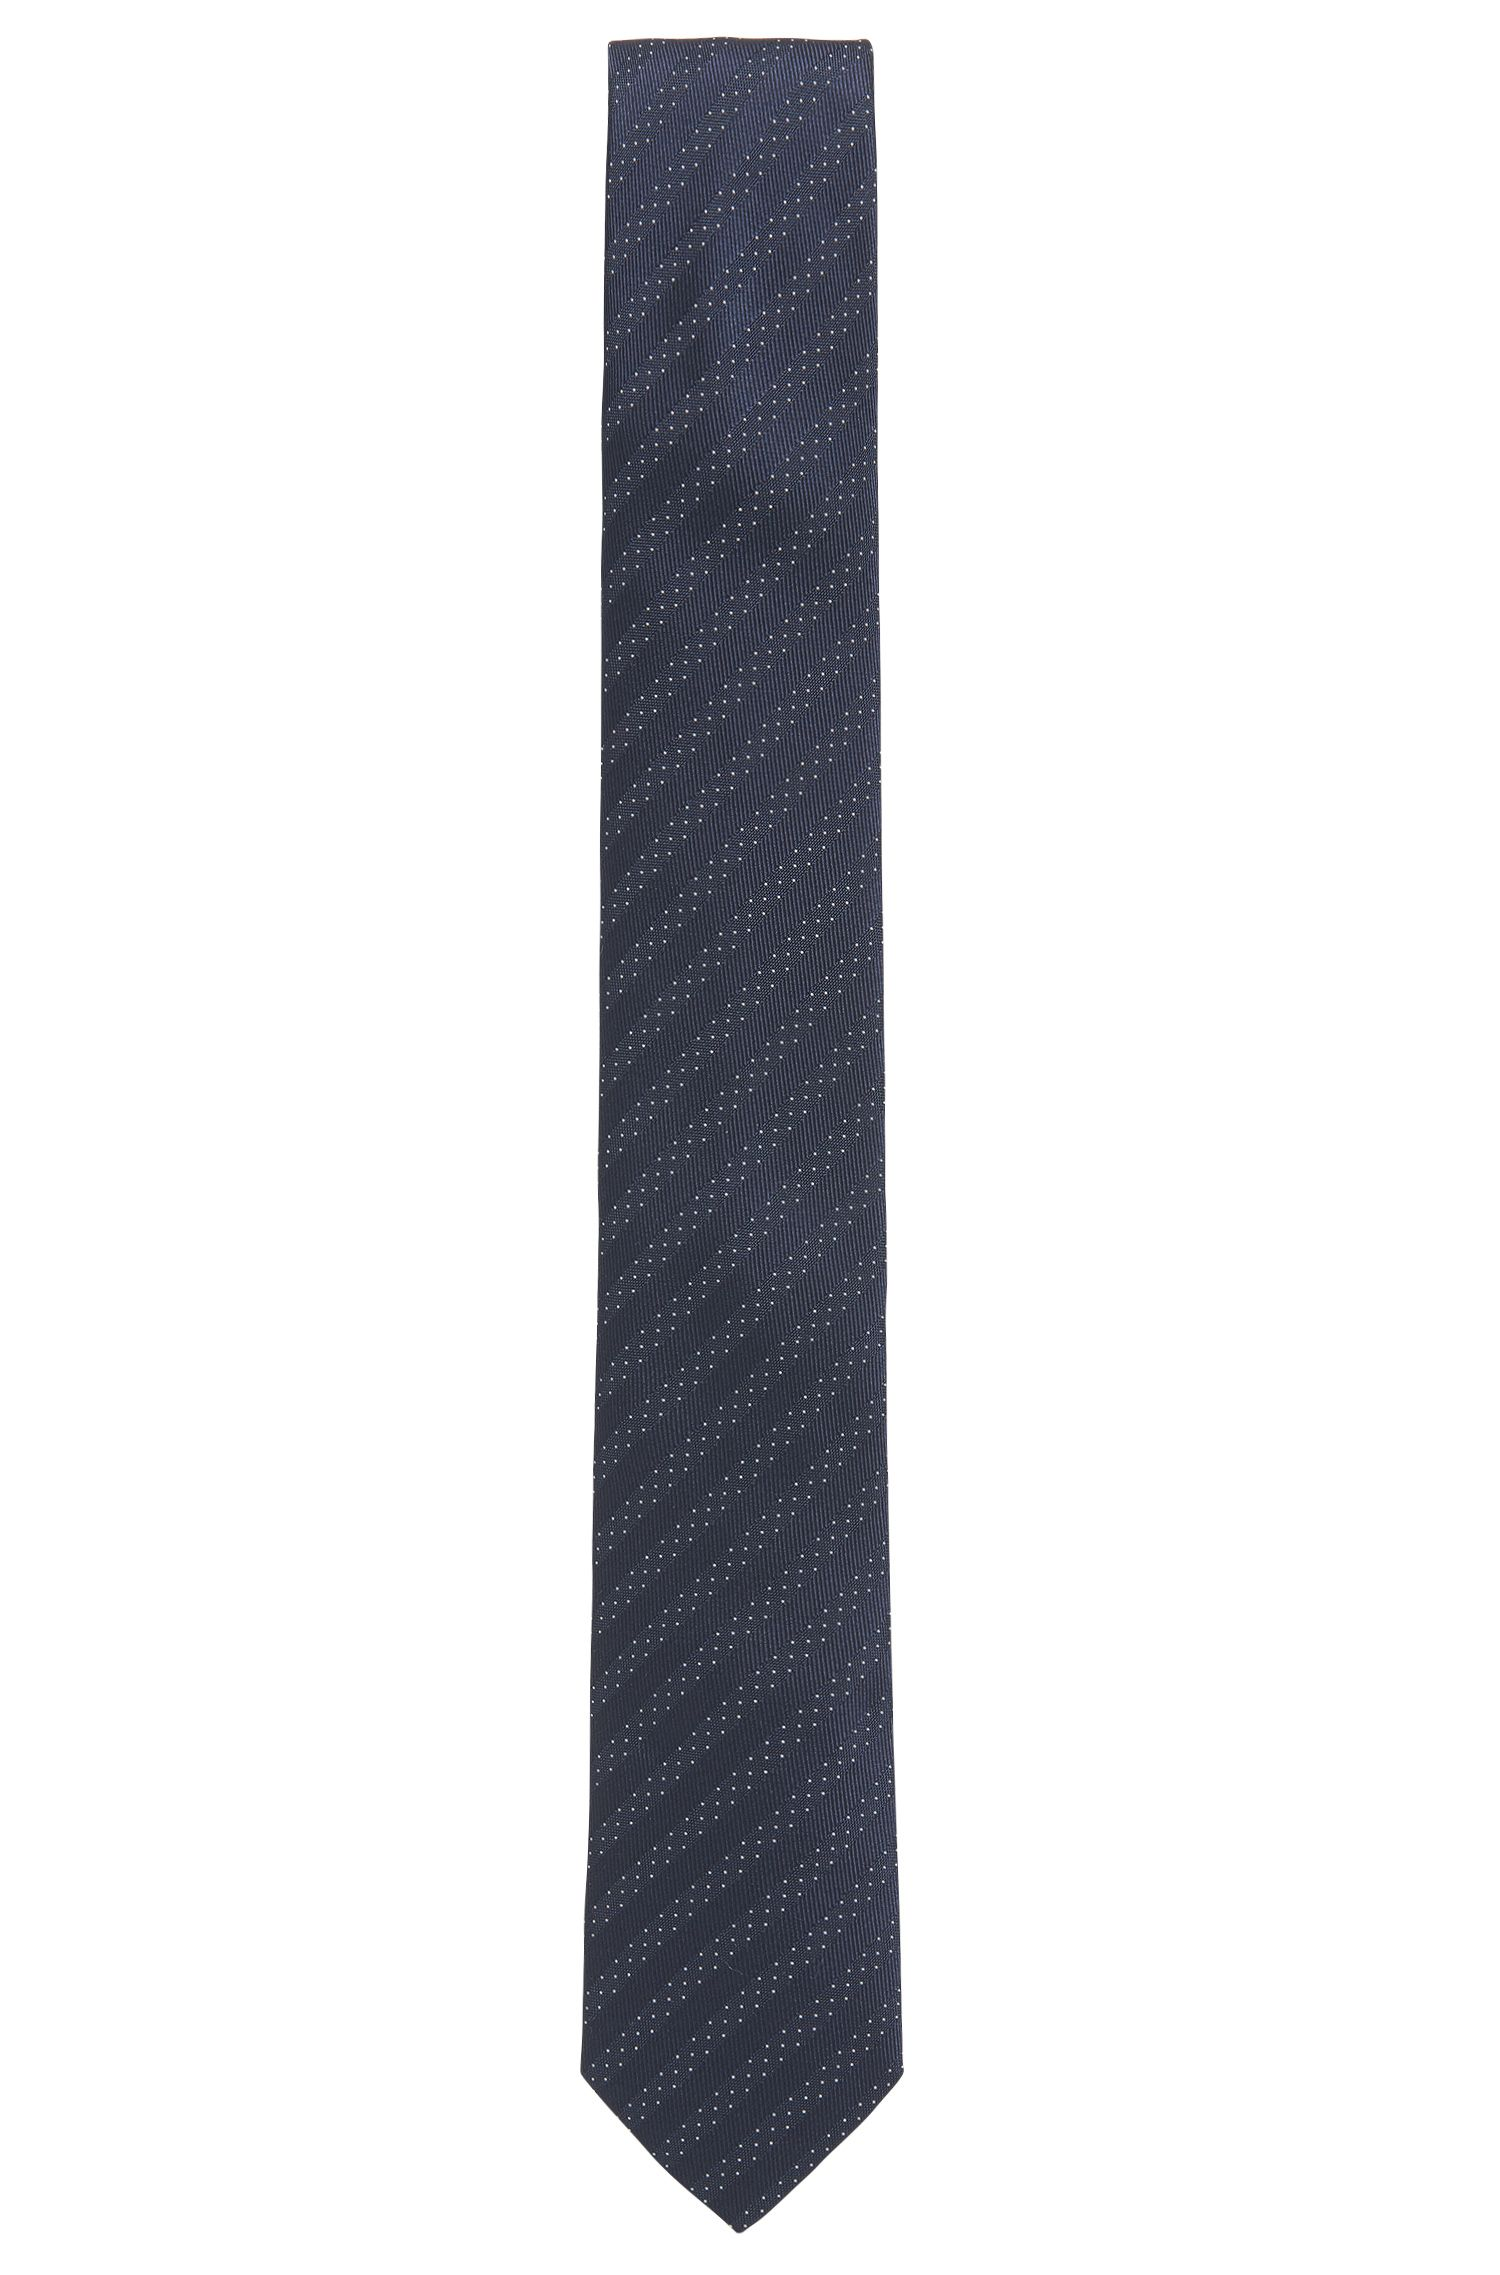 Micro-Dot Striped Italian Silk Slim Tie